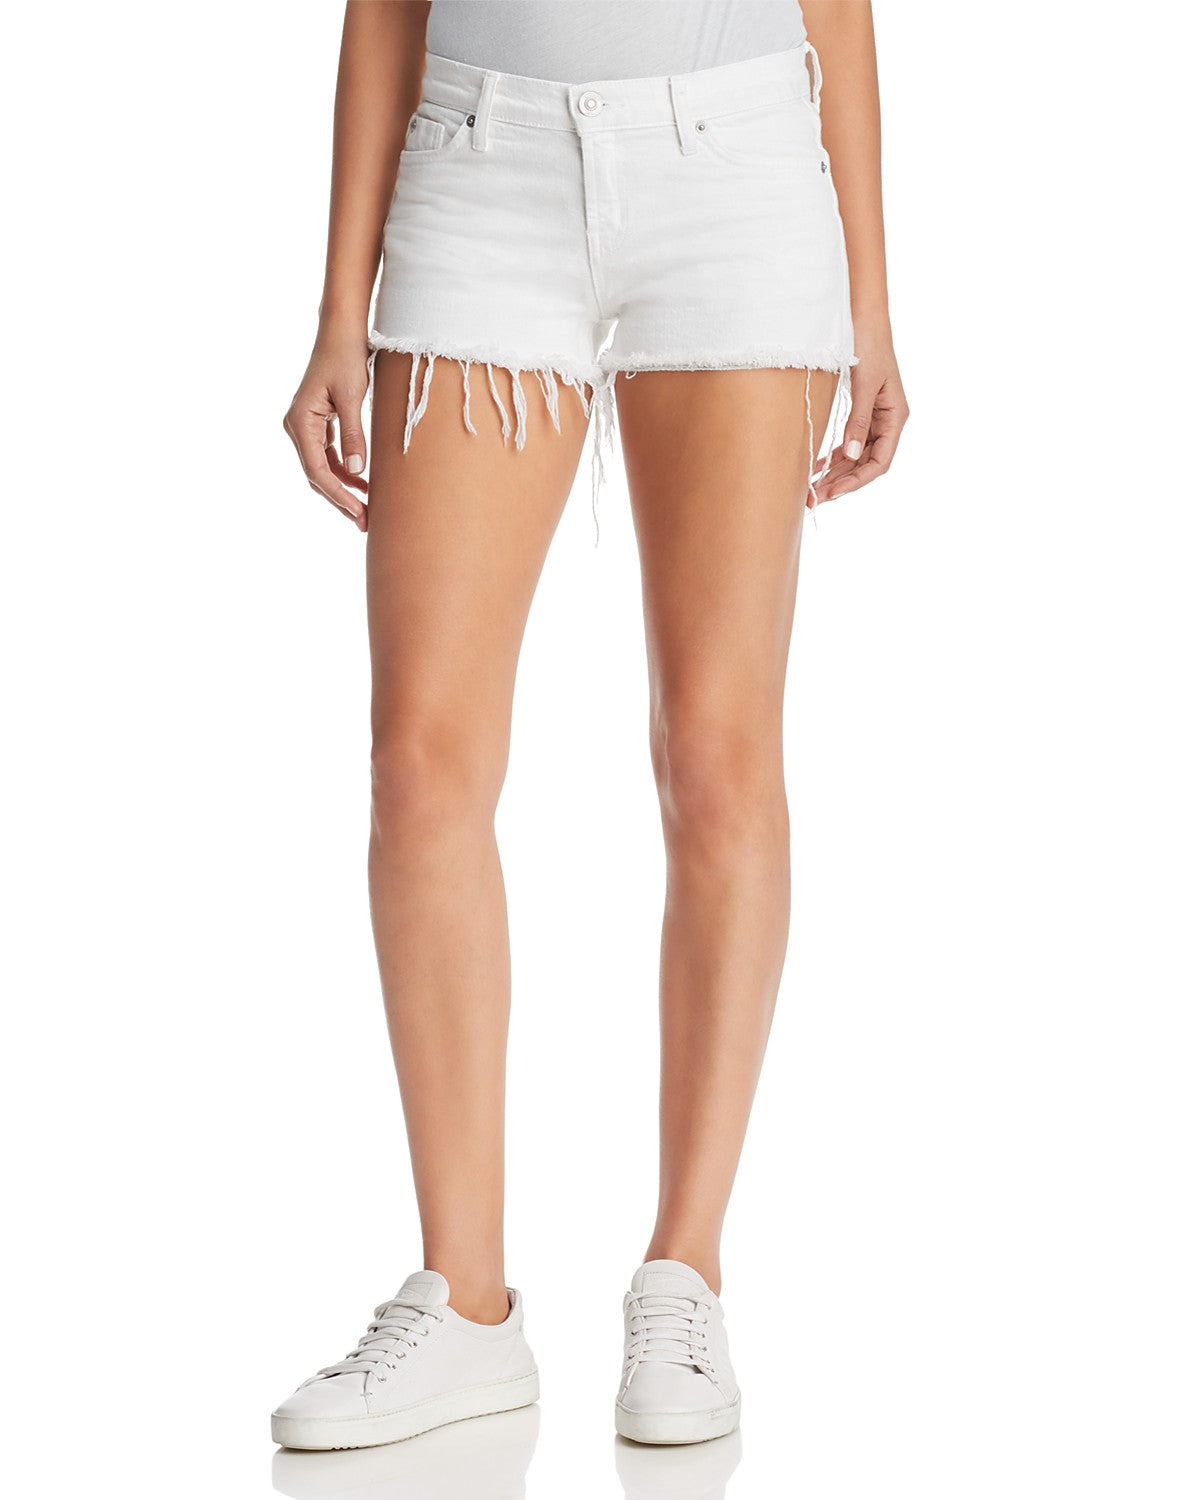 Hudson Women's Kenzie Cut Off Short in White WR699DWM